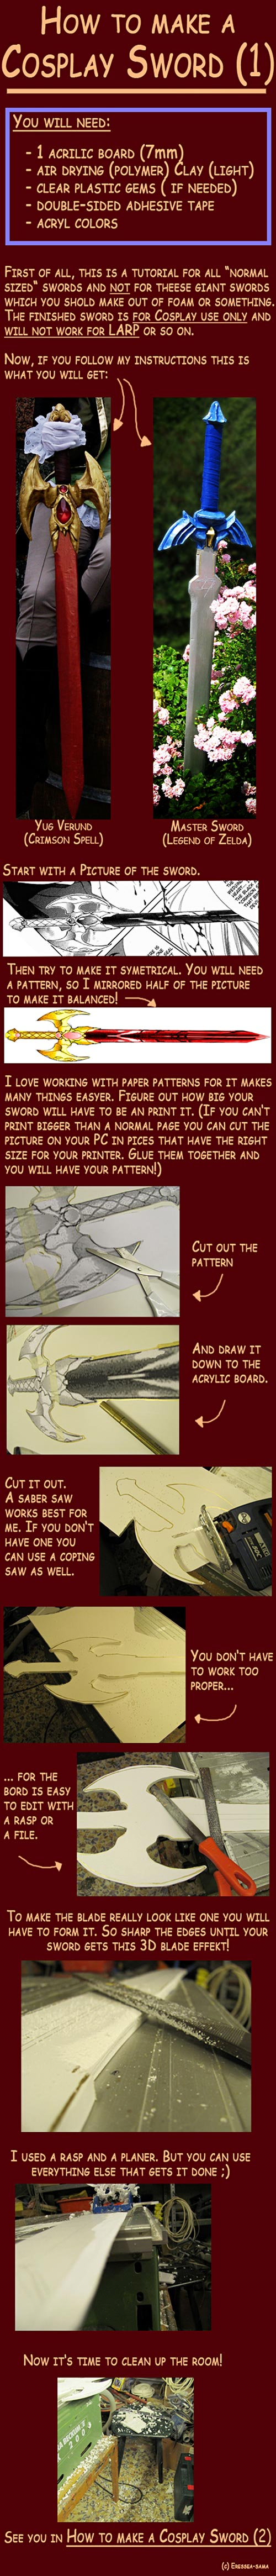 how_to_make_a_cosplay_sword_1_by_eressea_sama-d4bppy7